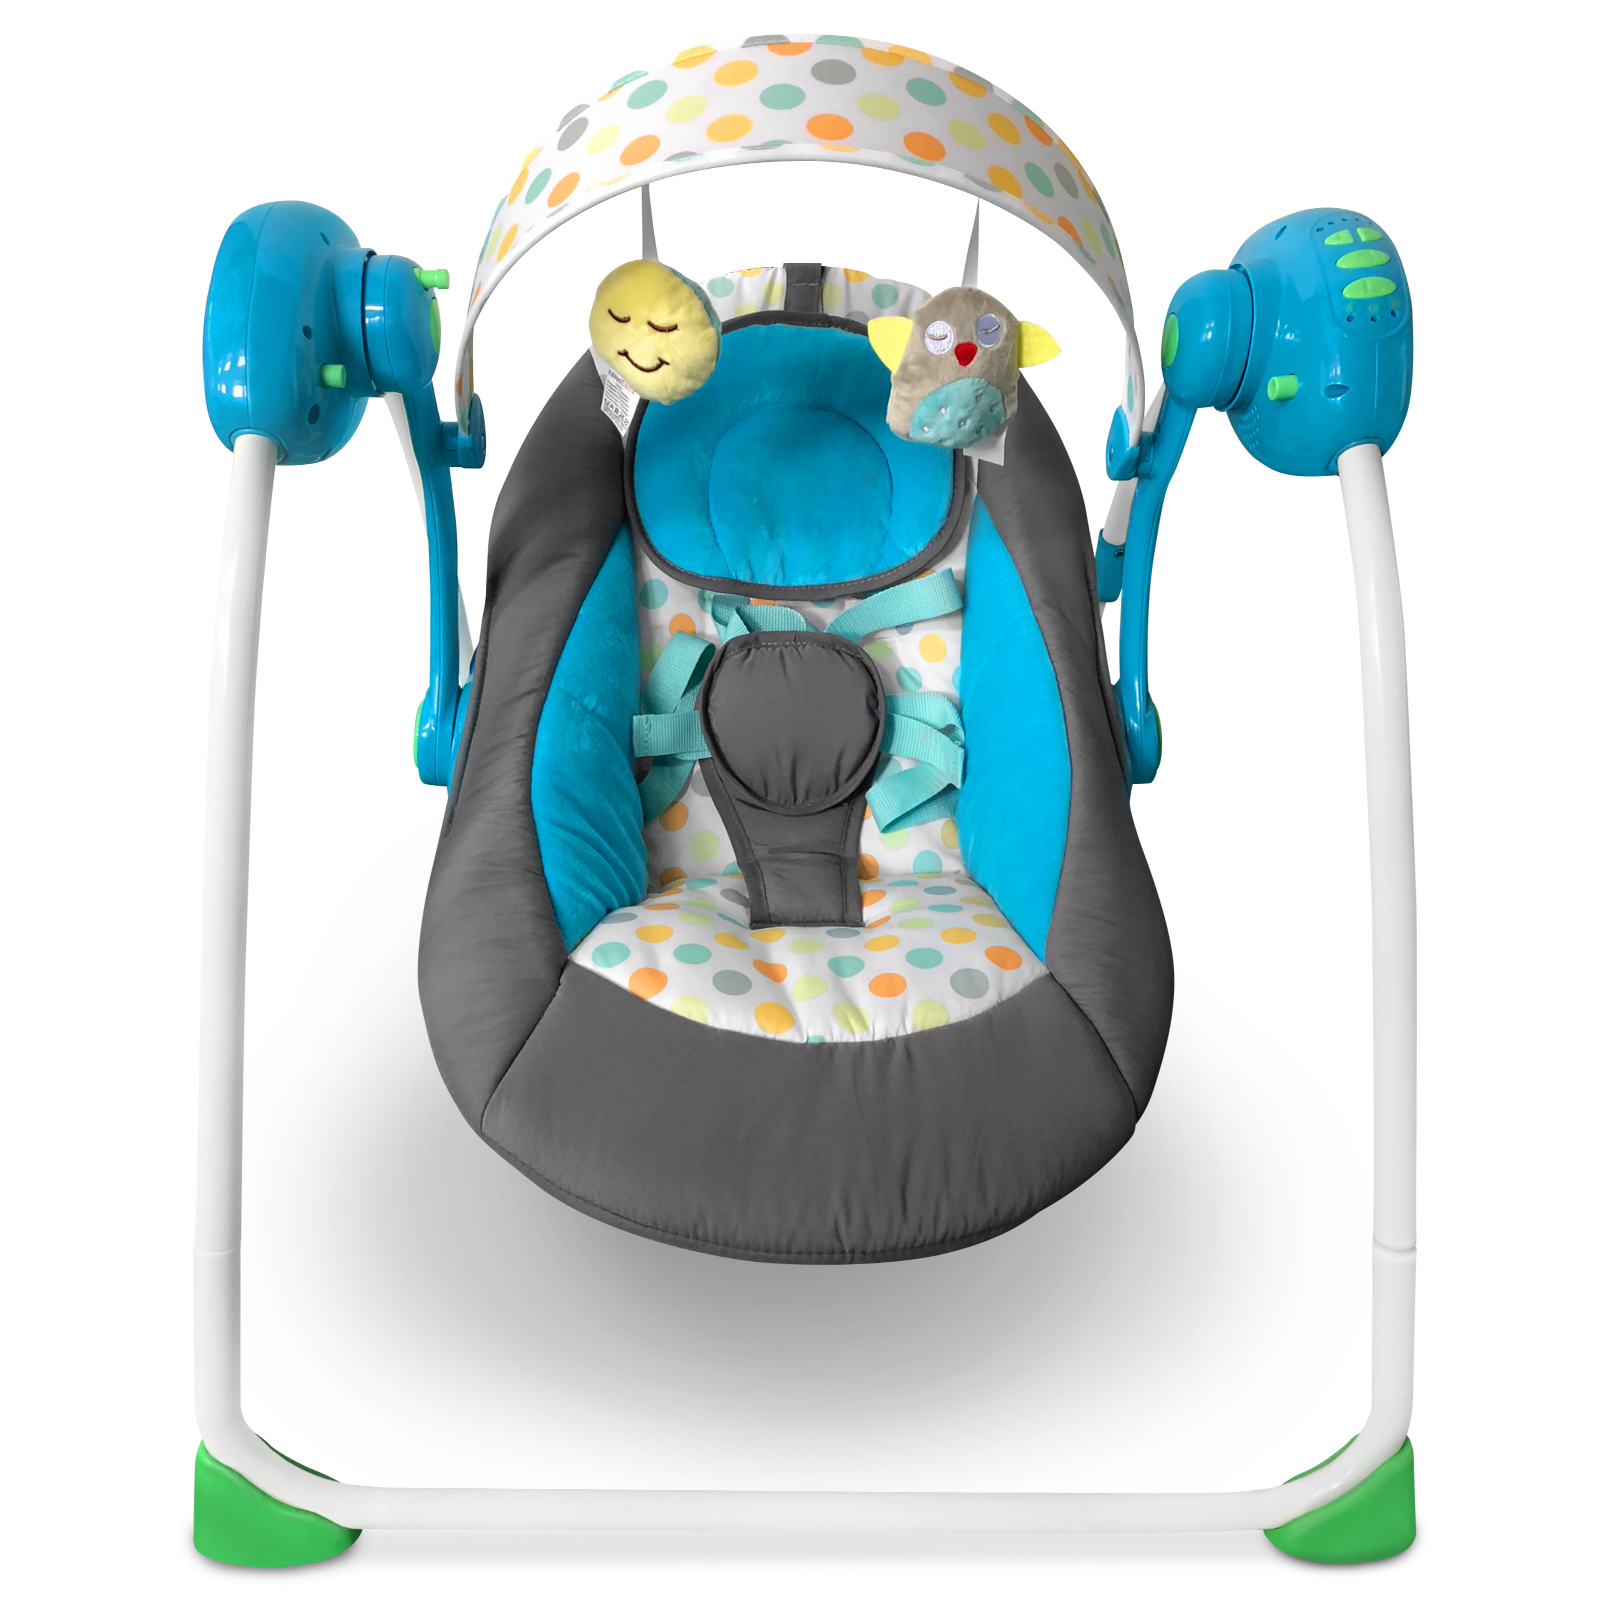 Baby-Bouncer-Music-MP3-Swing-Rocking-Chair-Infant-Entertainment-Toys-U12-Months thumbnail 10